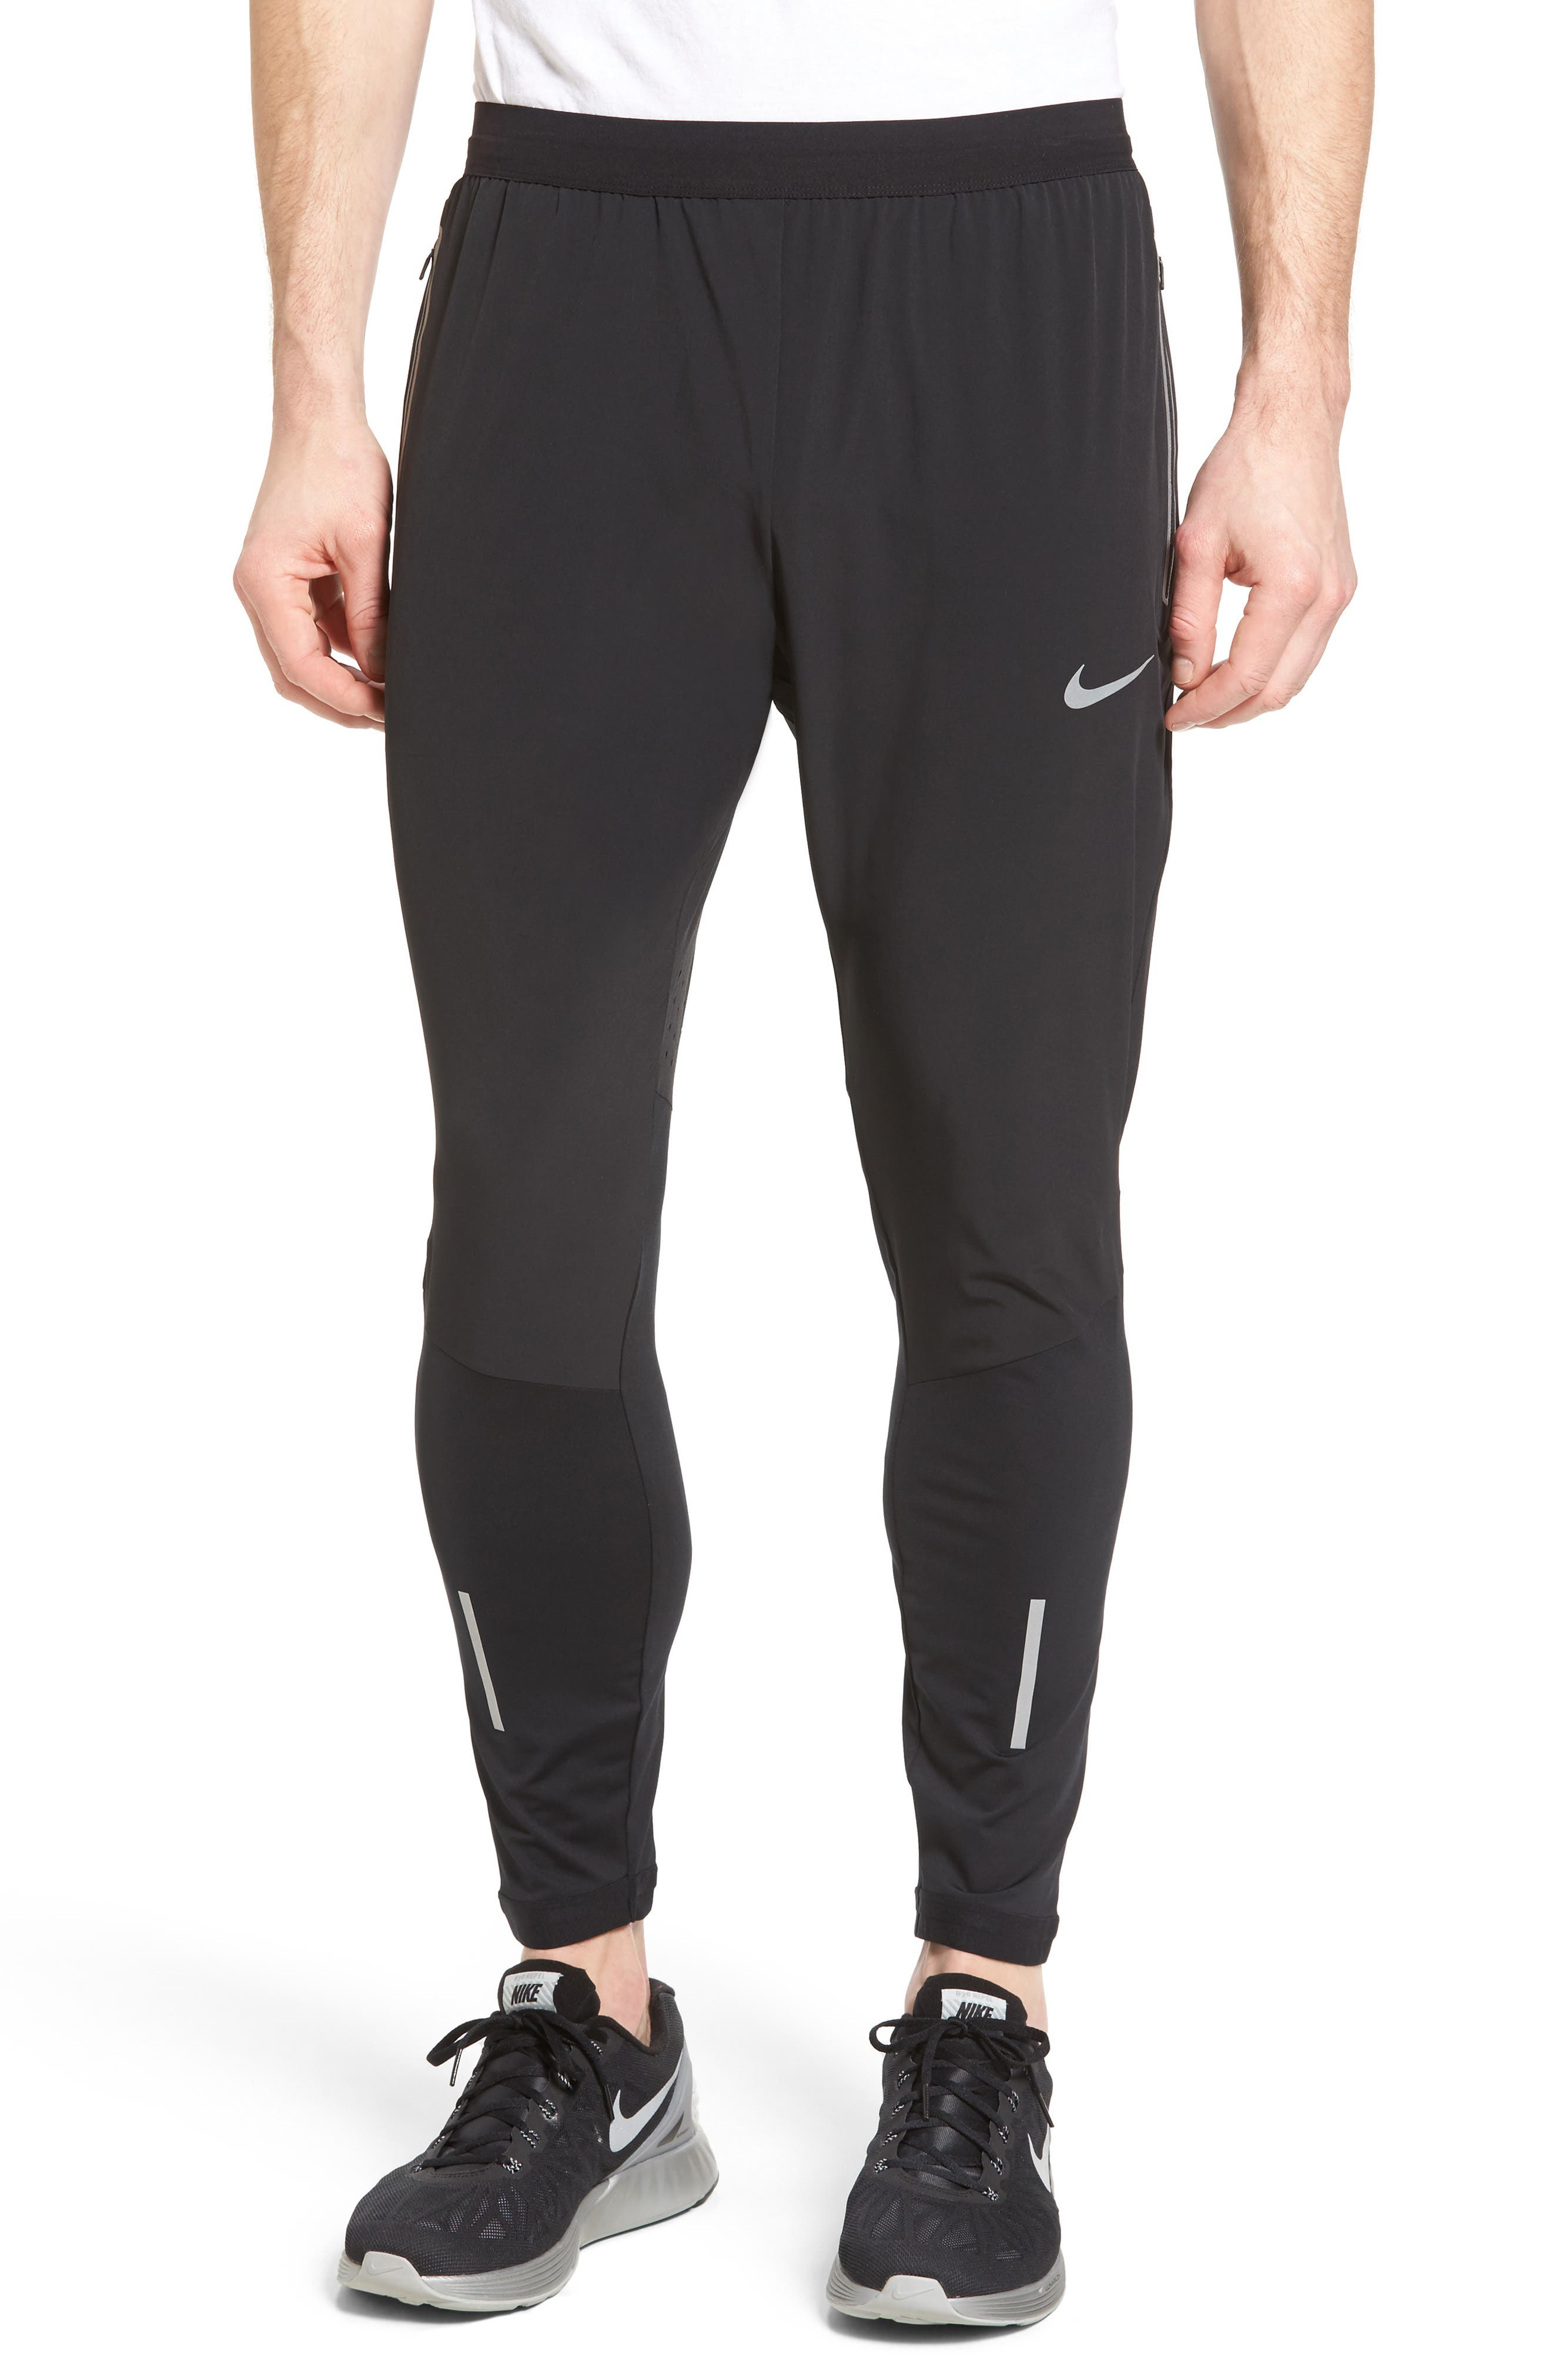 Flex Running Pants,                         Main,                         color, BLACK/ PURE PLATINUM